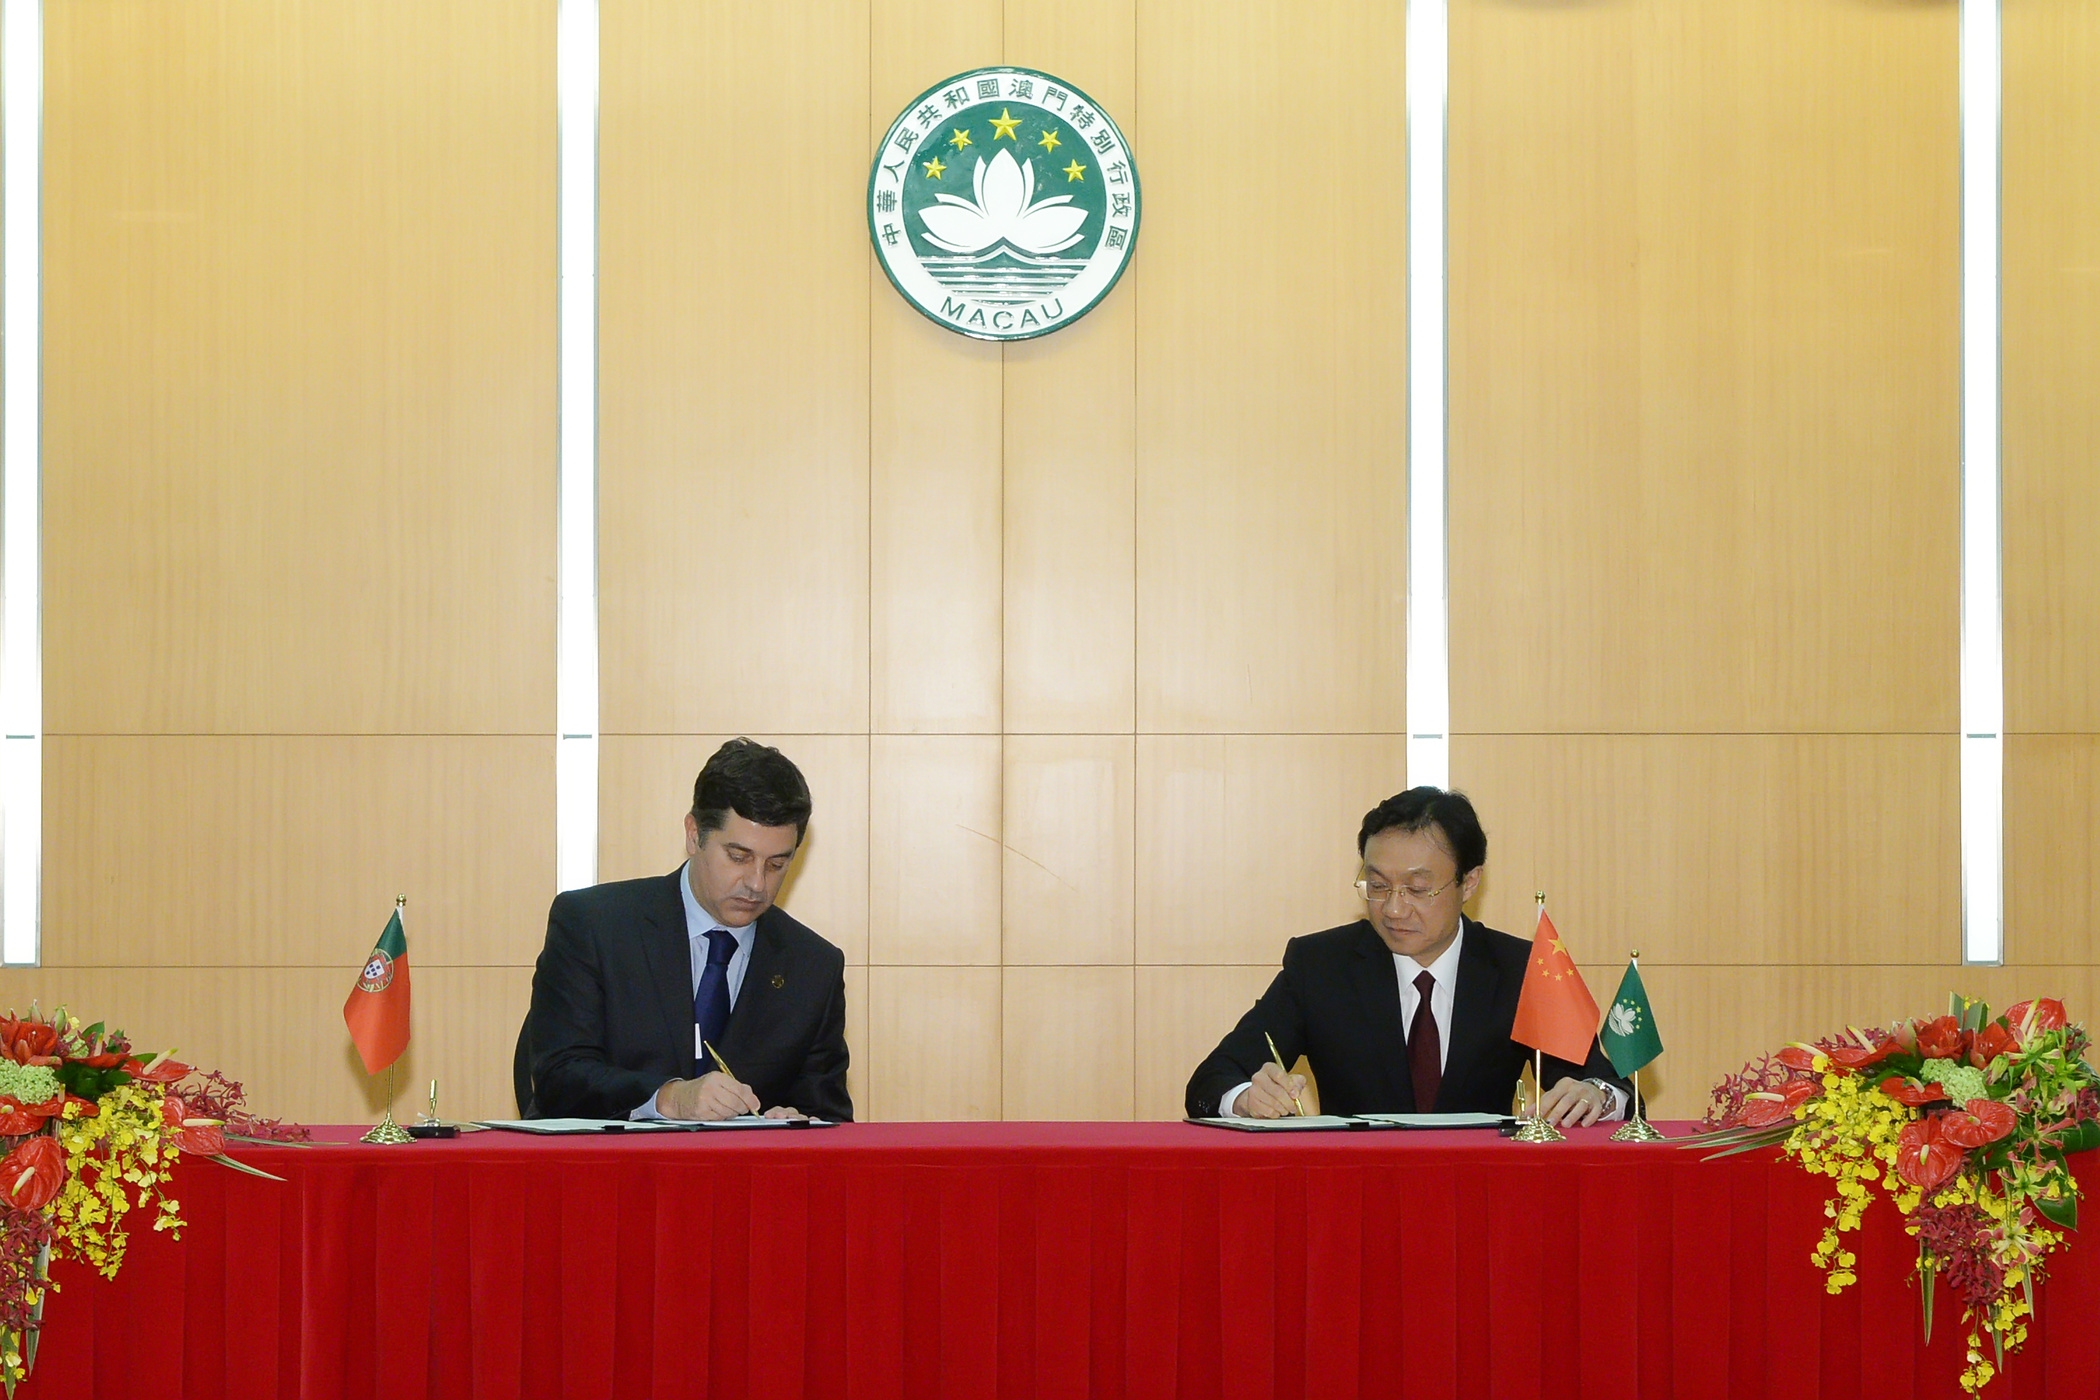 Macau and Portugal sign tourism cooperation and food security protocols